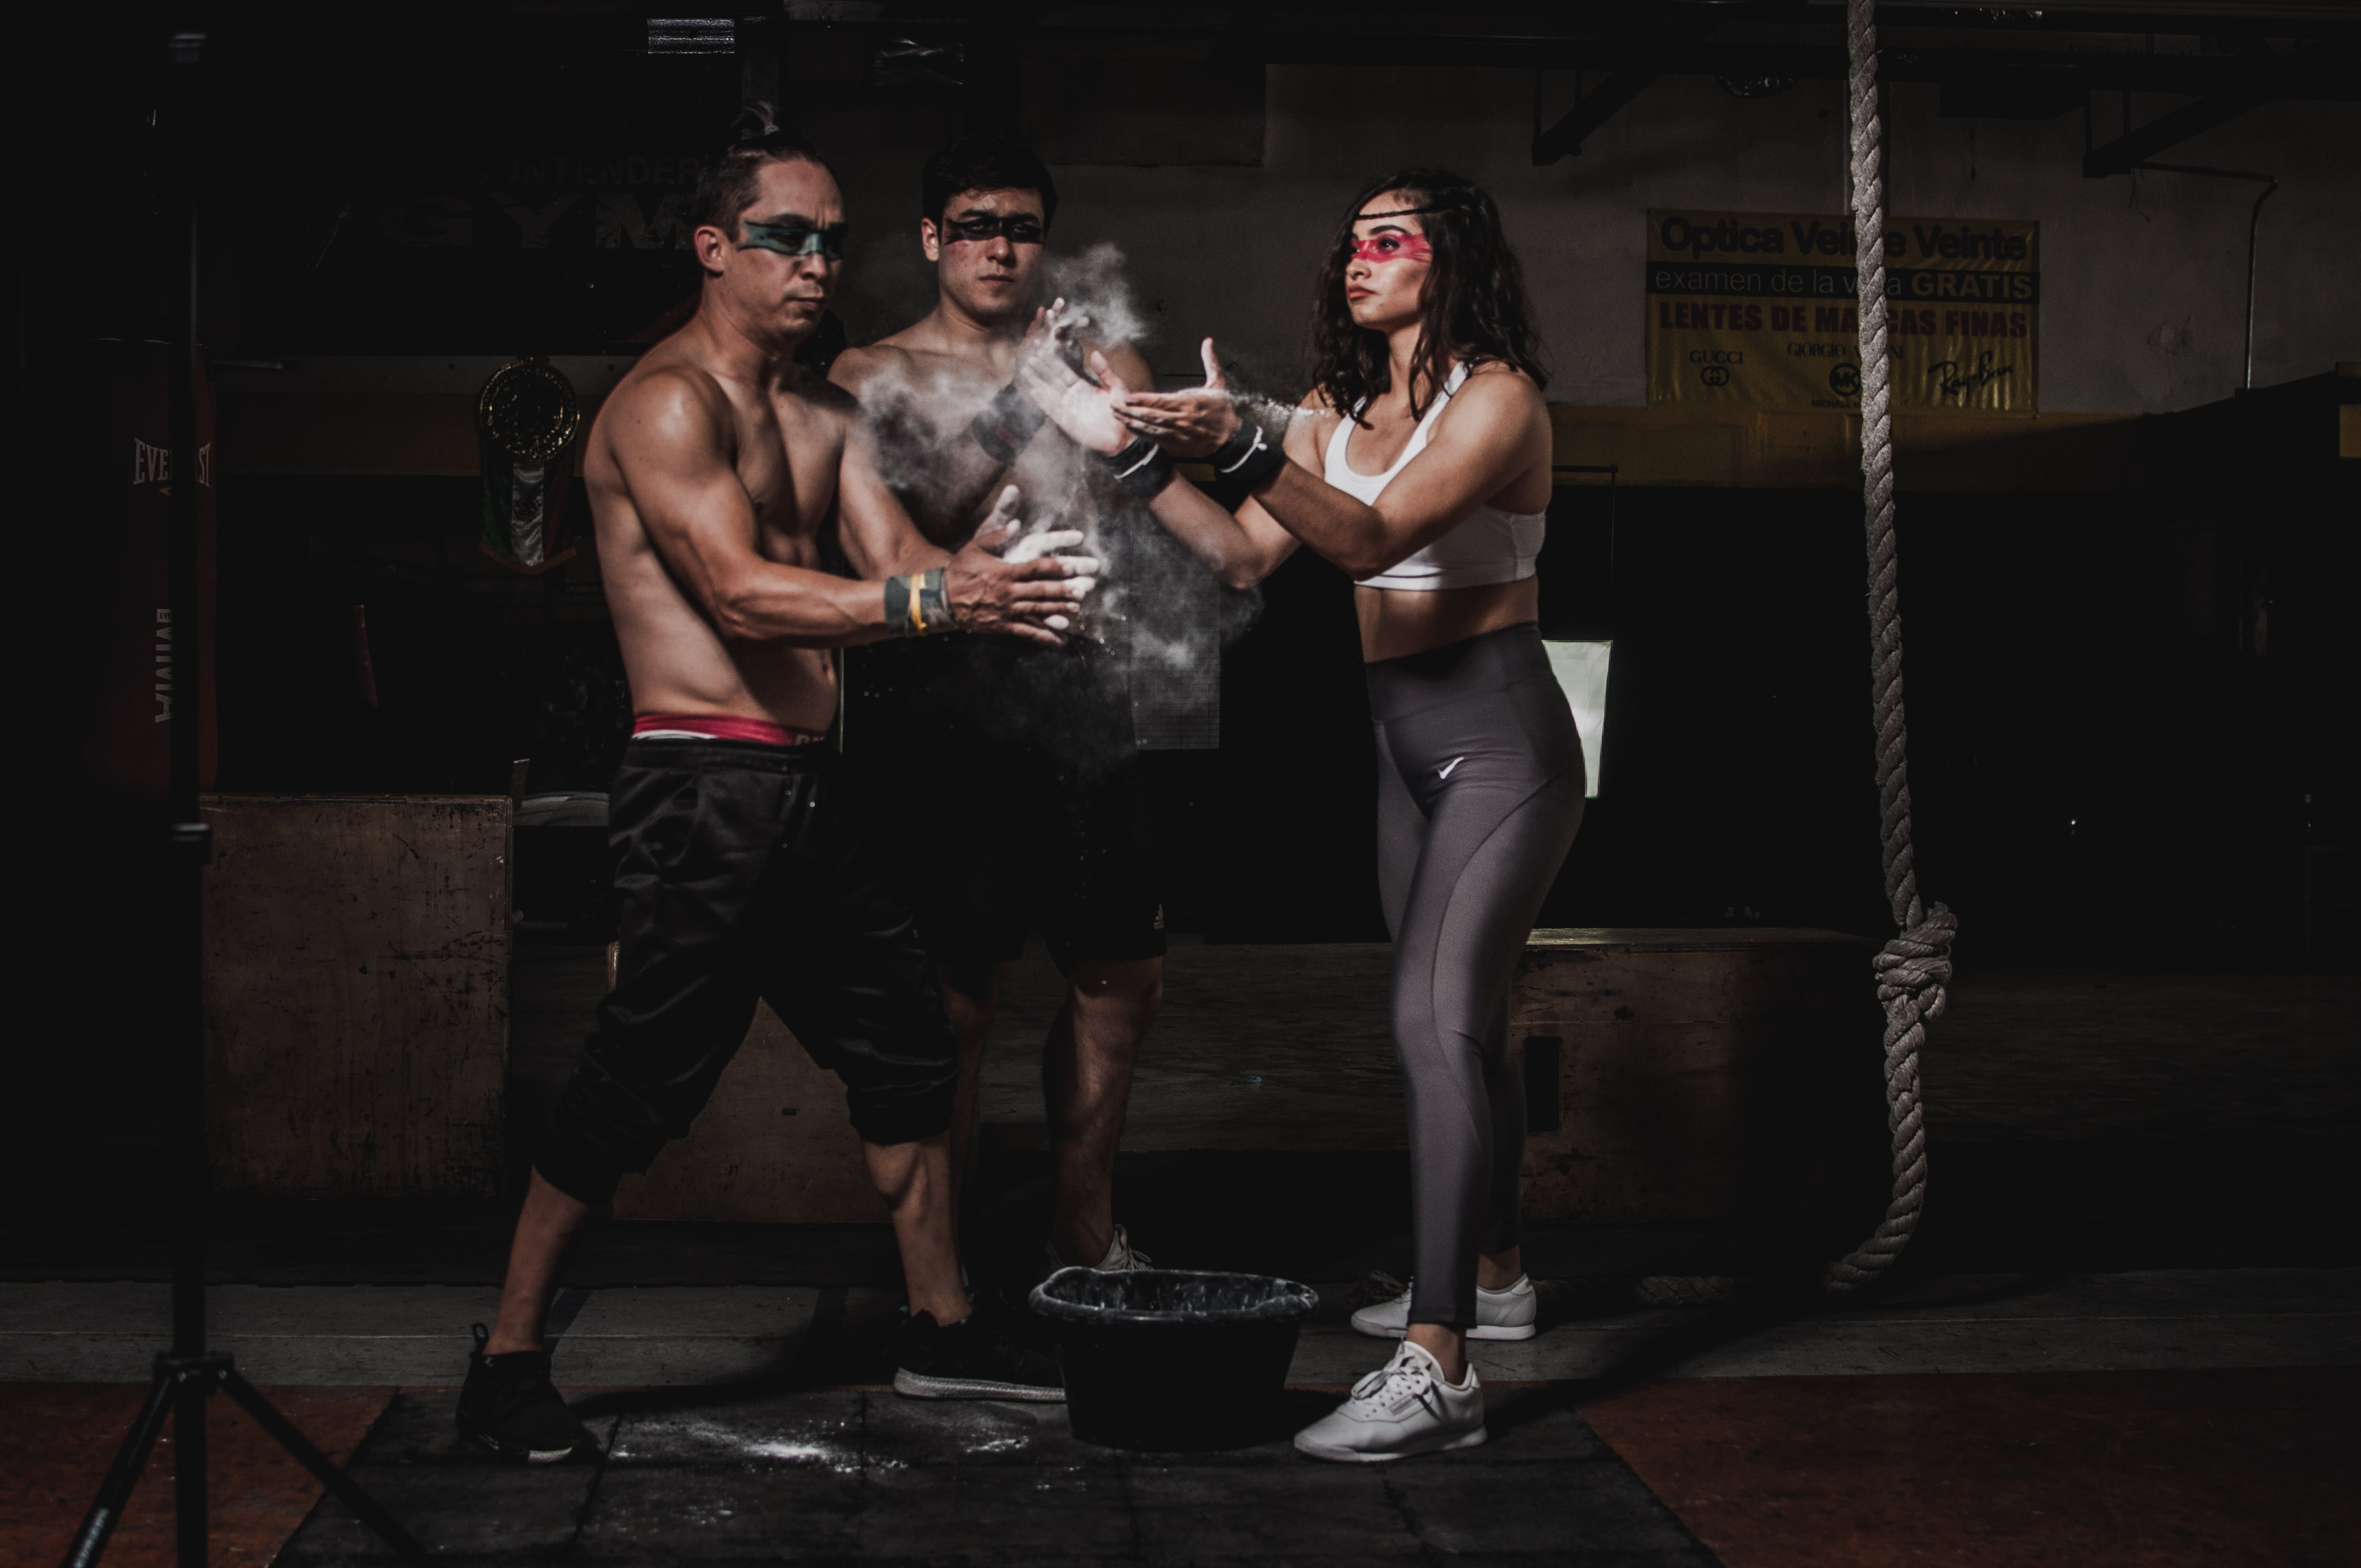 Three People in a Gym